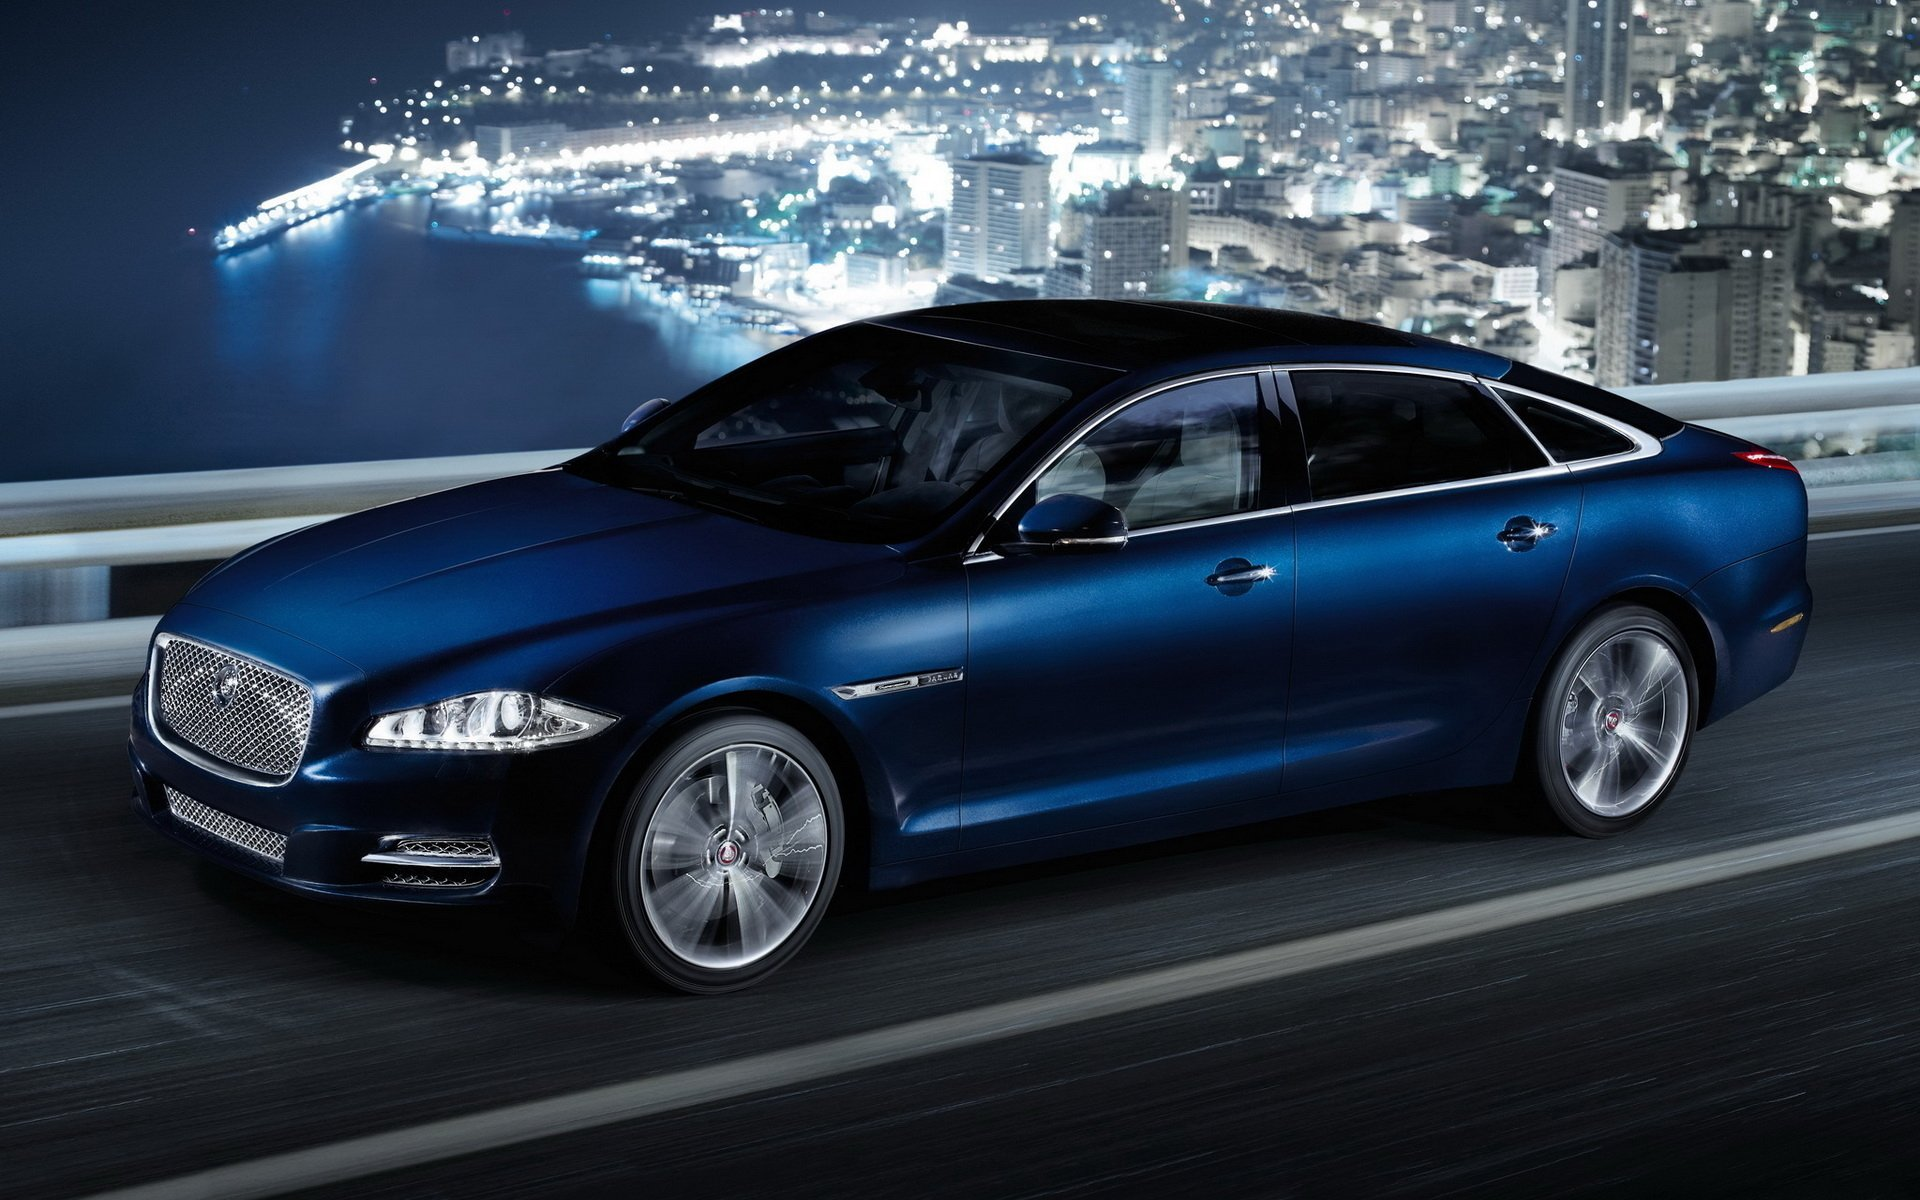 Jaguar Car Wallpaper Wallpapers High Quality: Jaguar XJ Full HD Wallpaper And Background Image